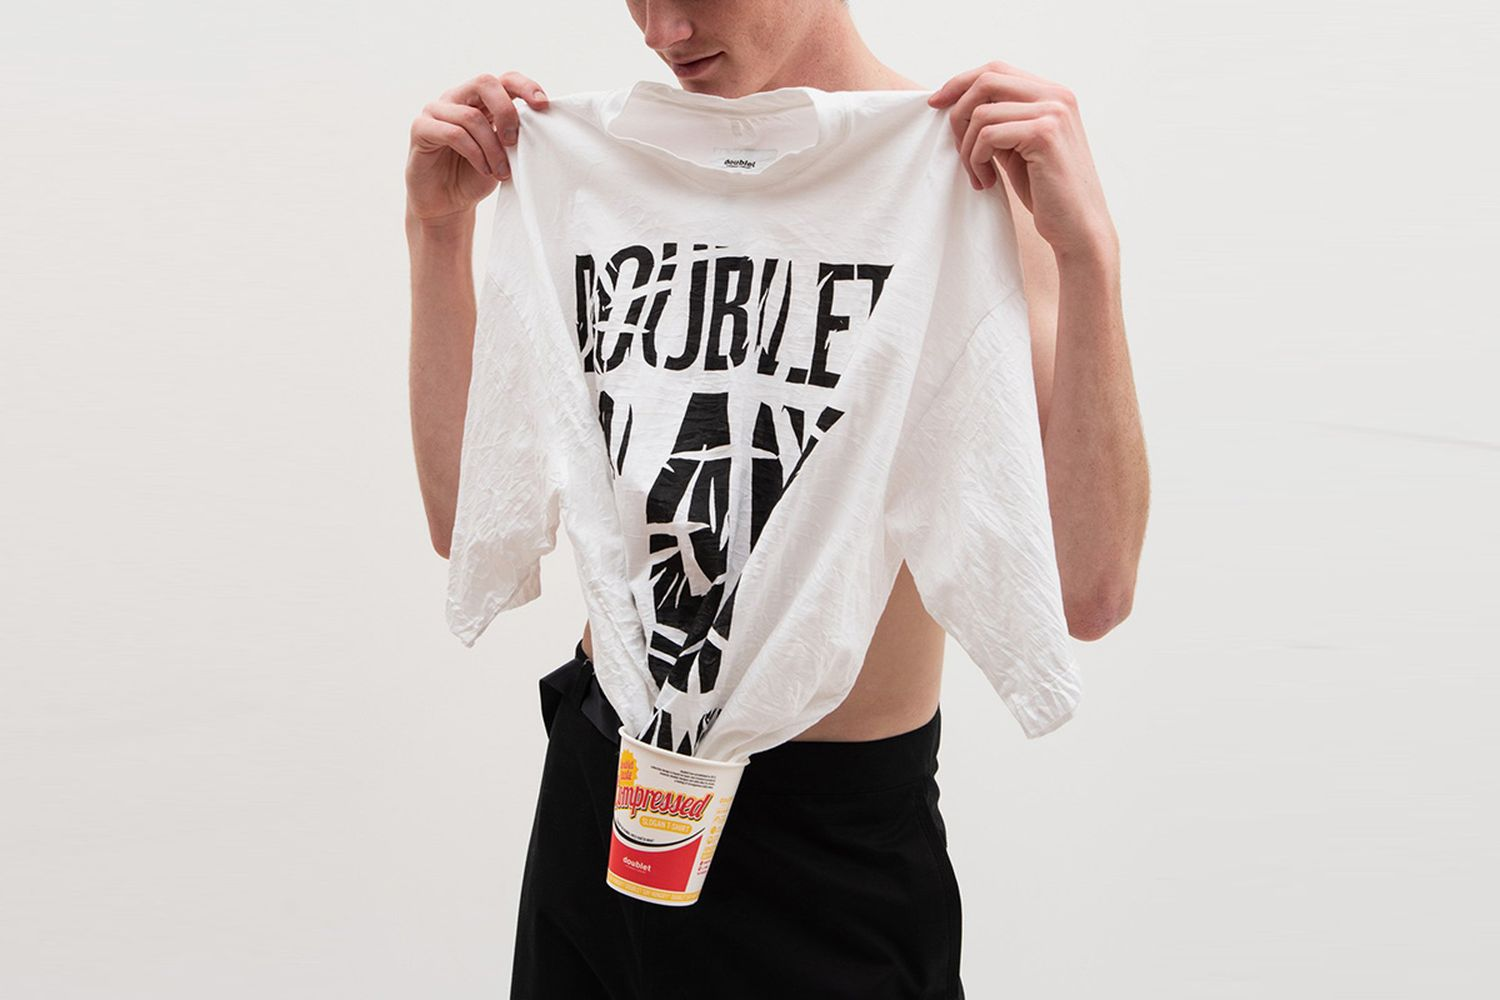 T-Shirt In Instant Noodle Cup